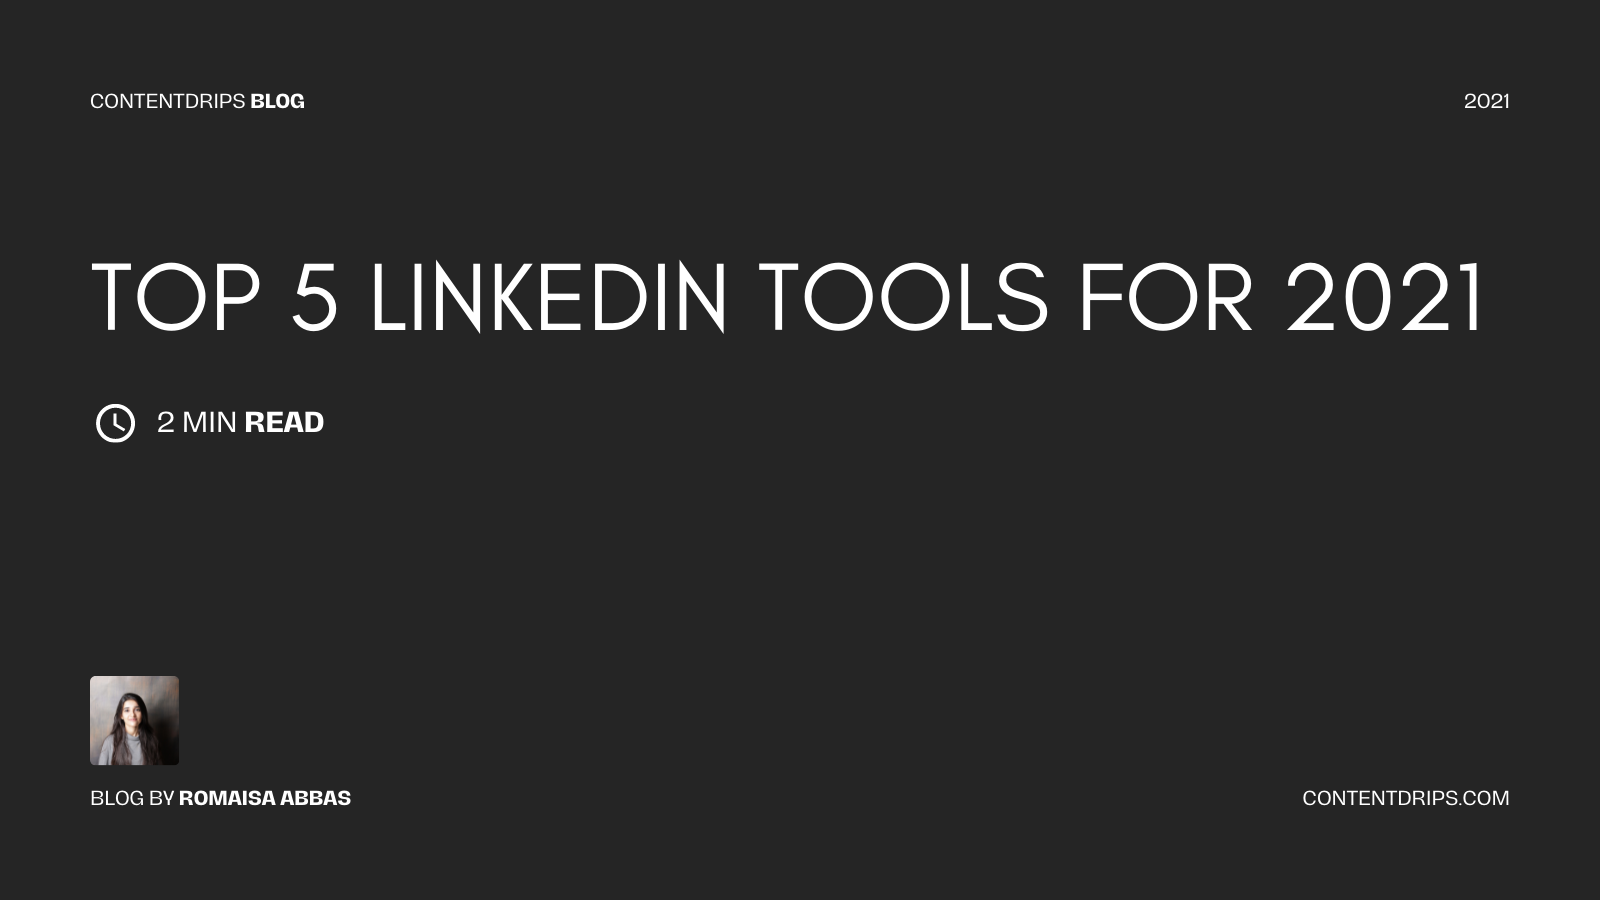 Top 5 LinkedIn Tools You Need in 2021